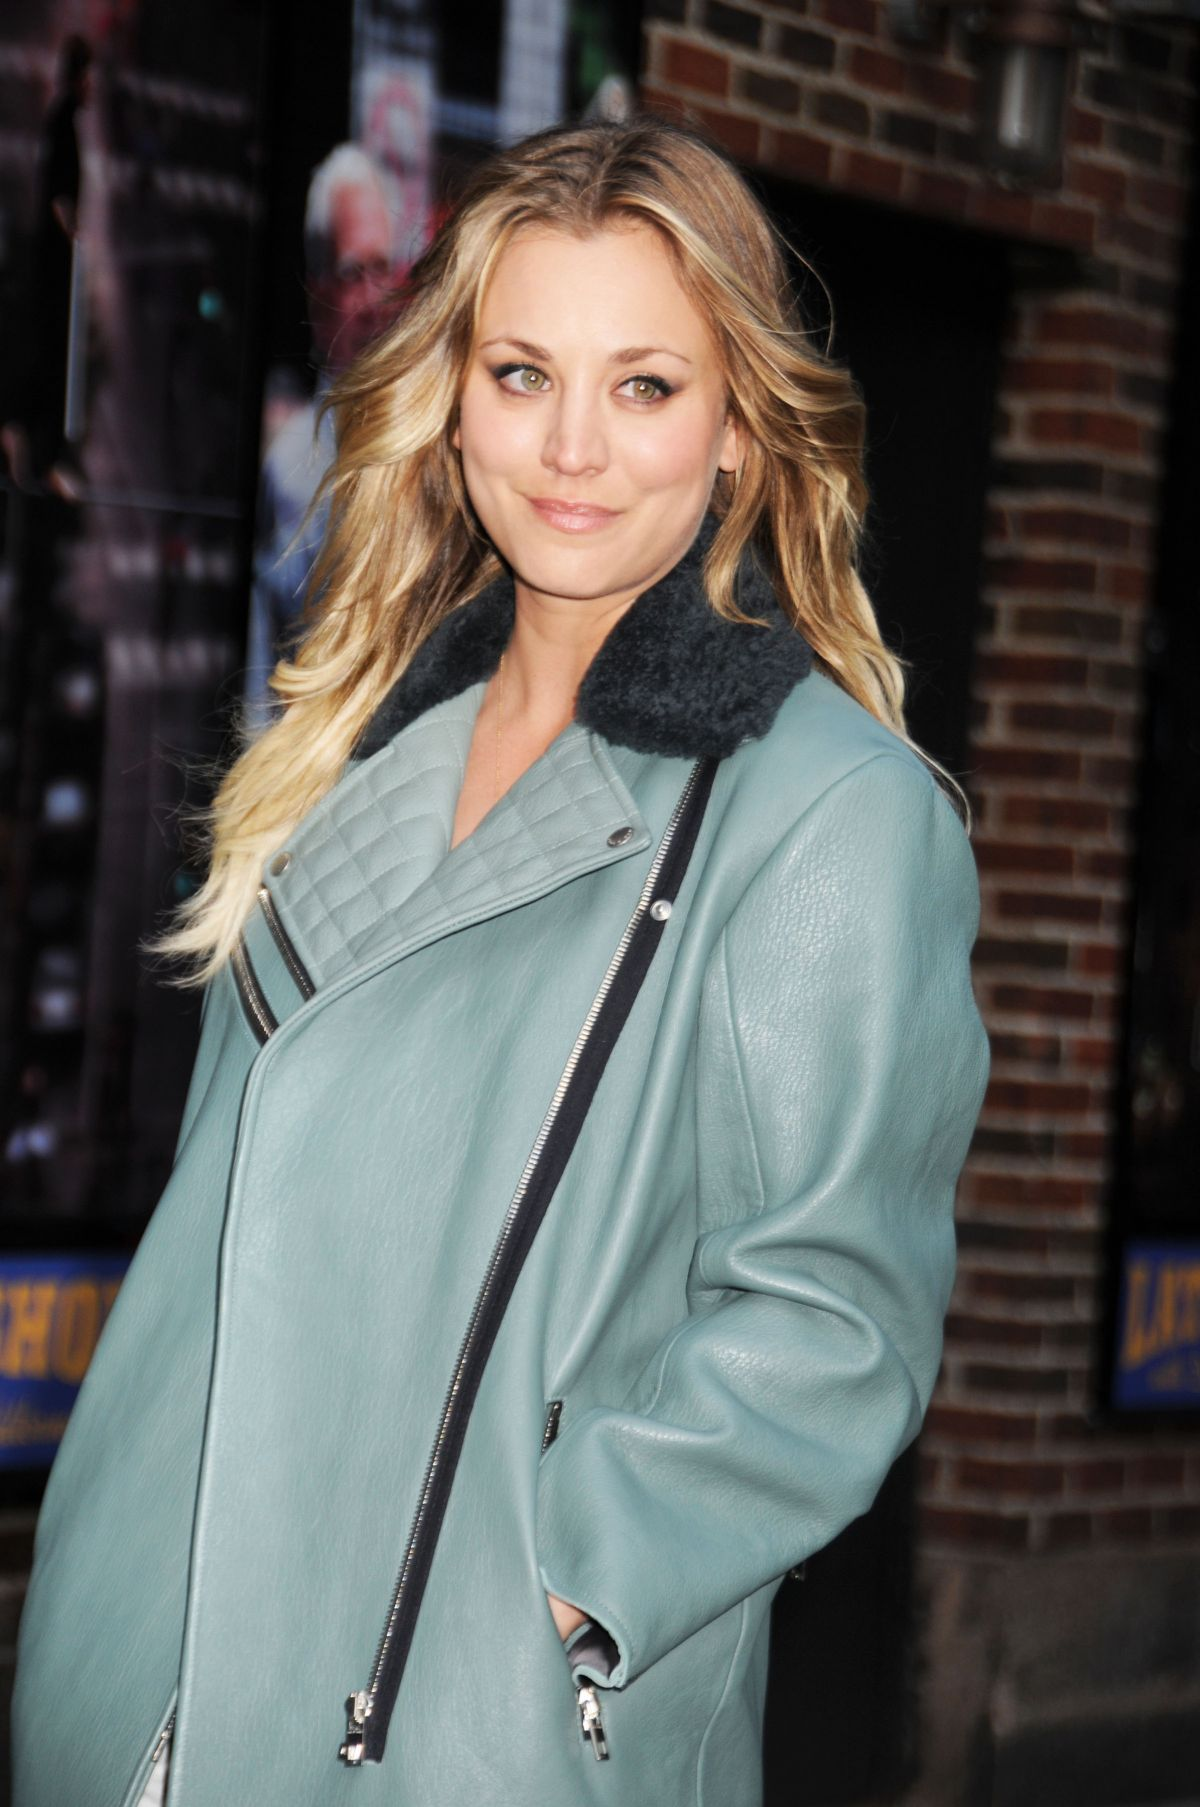 KALEY CUOCO Arrives at The Late Show with David Letterman in New York